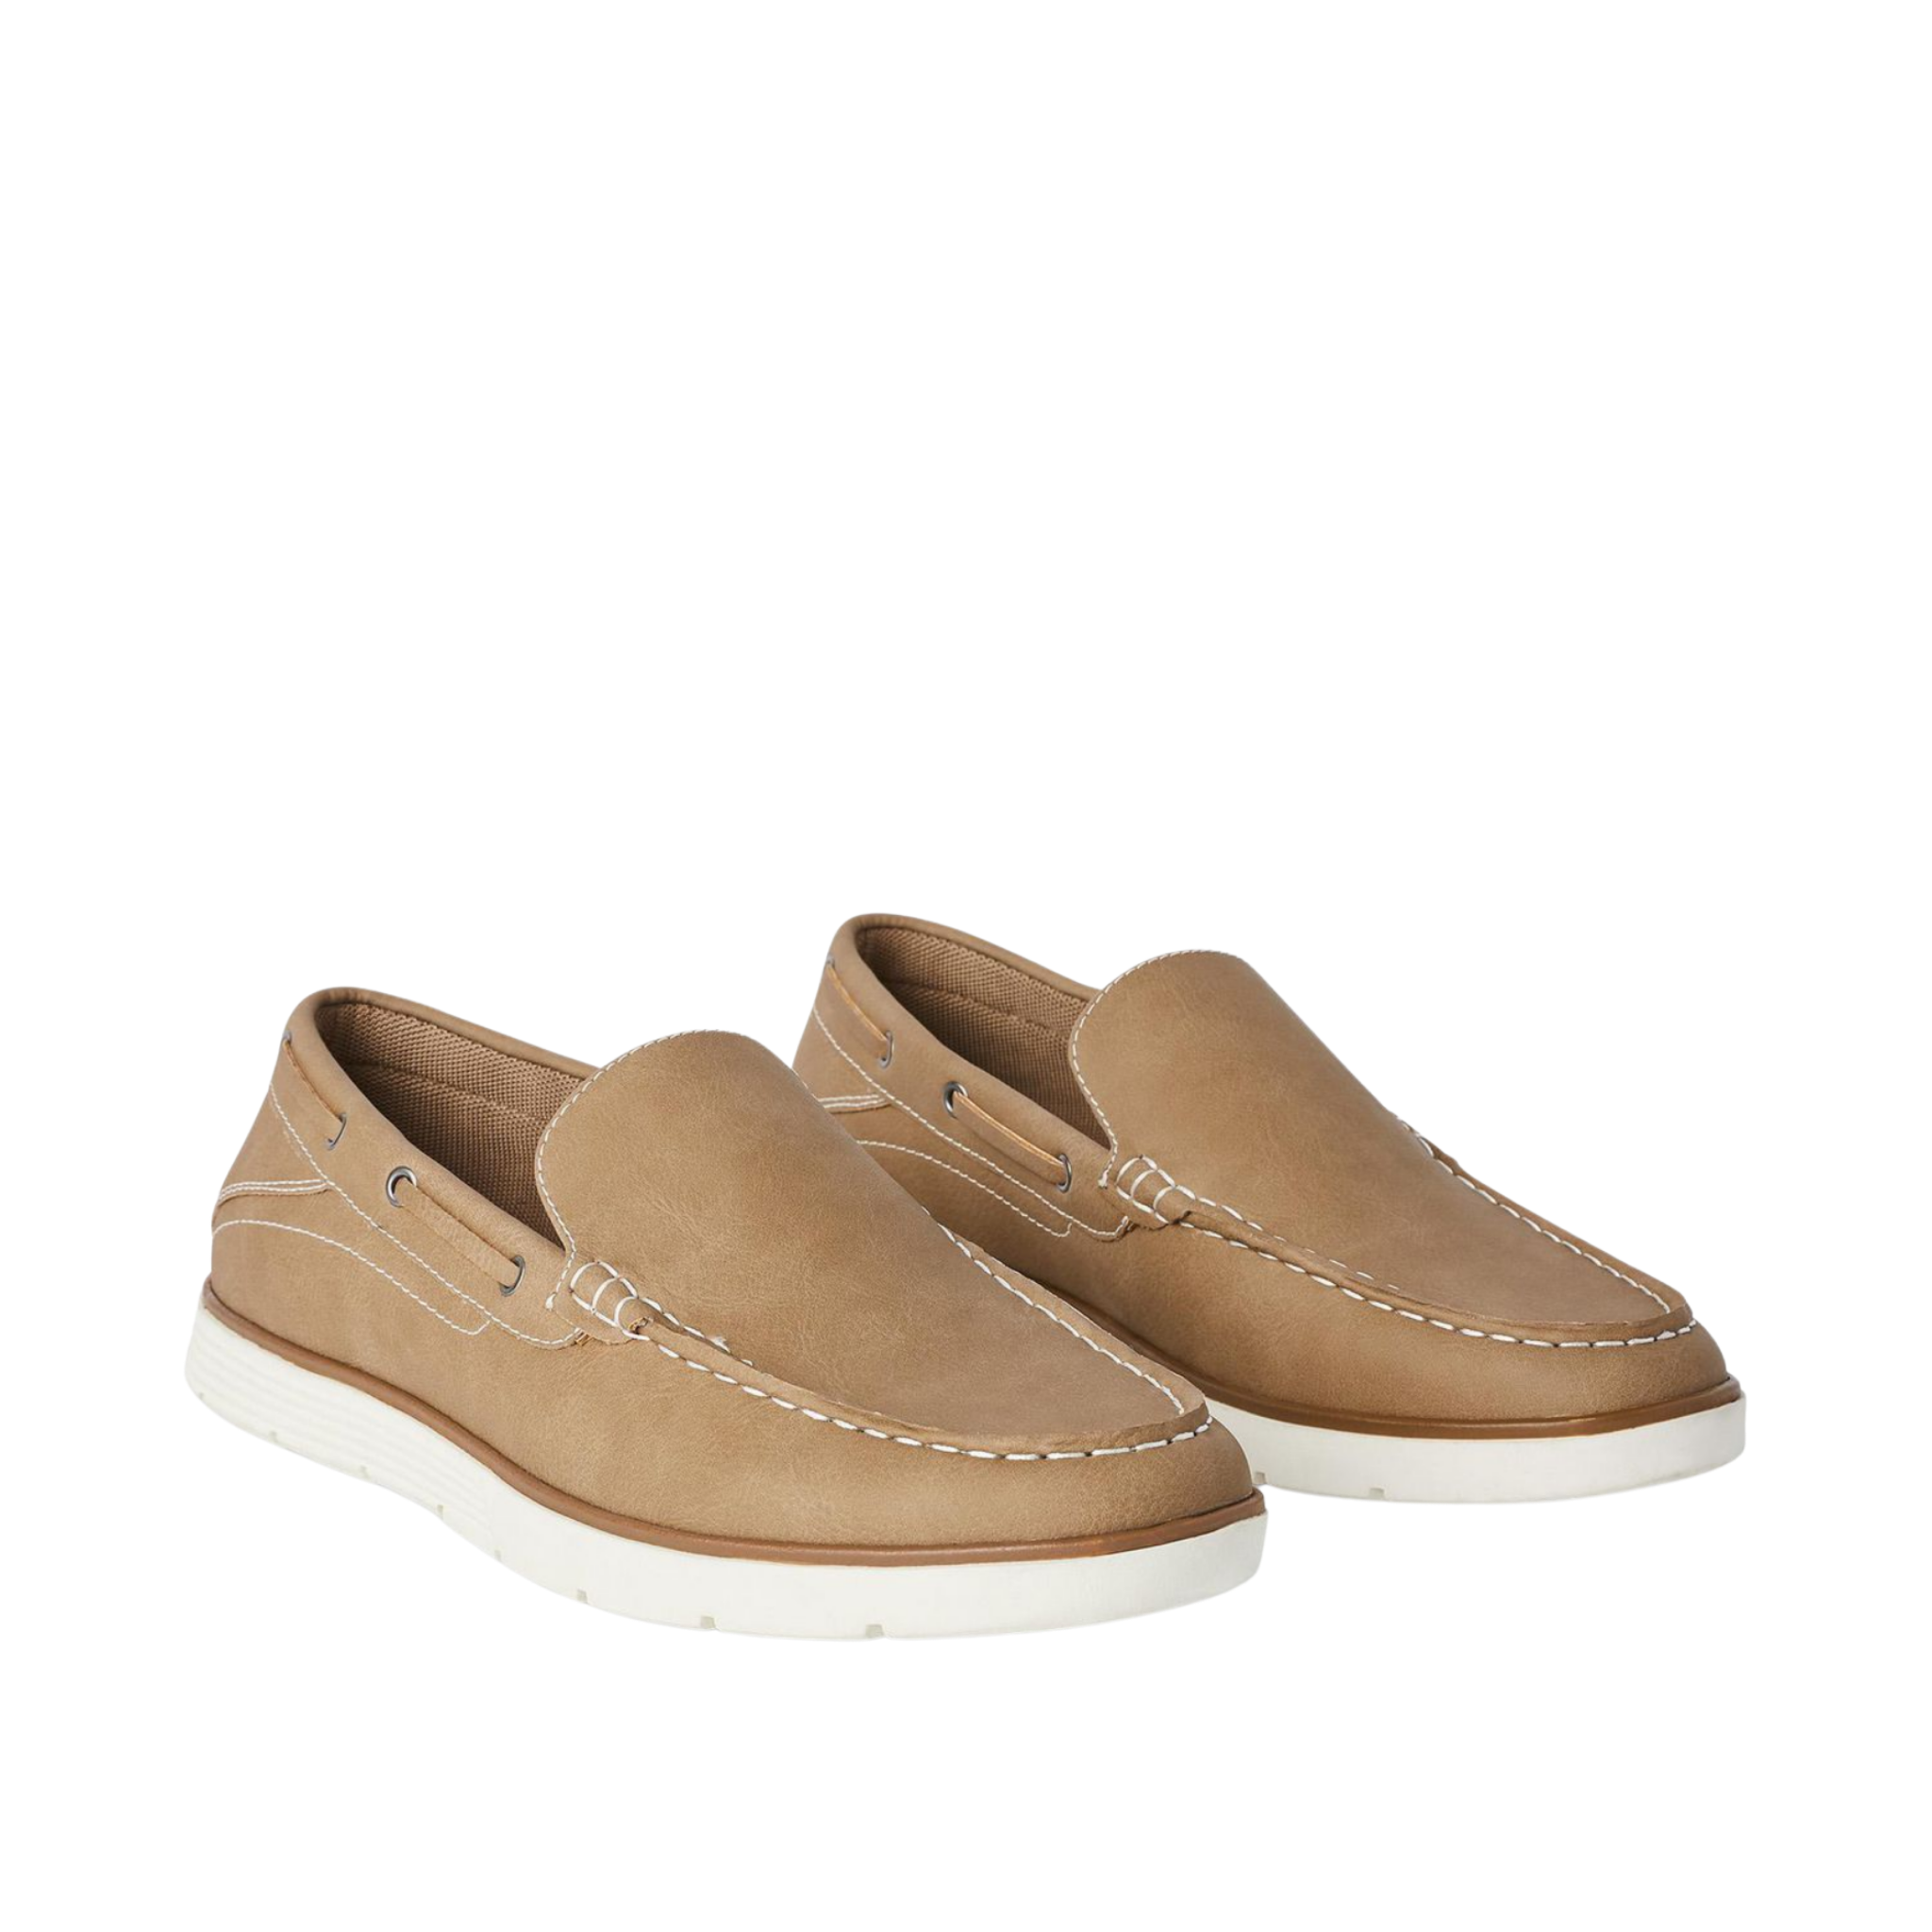 George Men's Tan Sean Boat Shoes, 9 US, 42 EU - MGworld